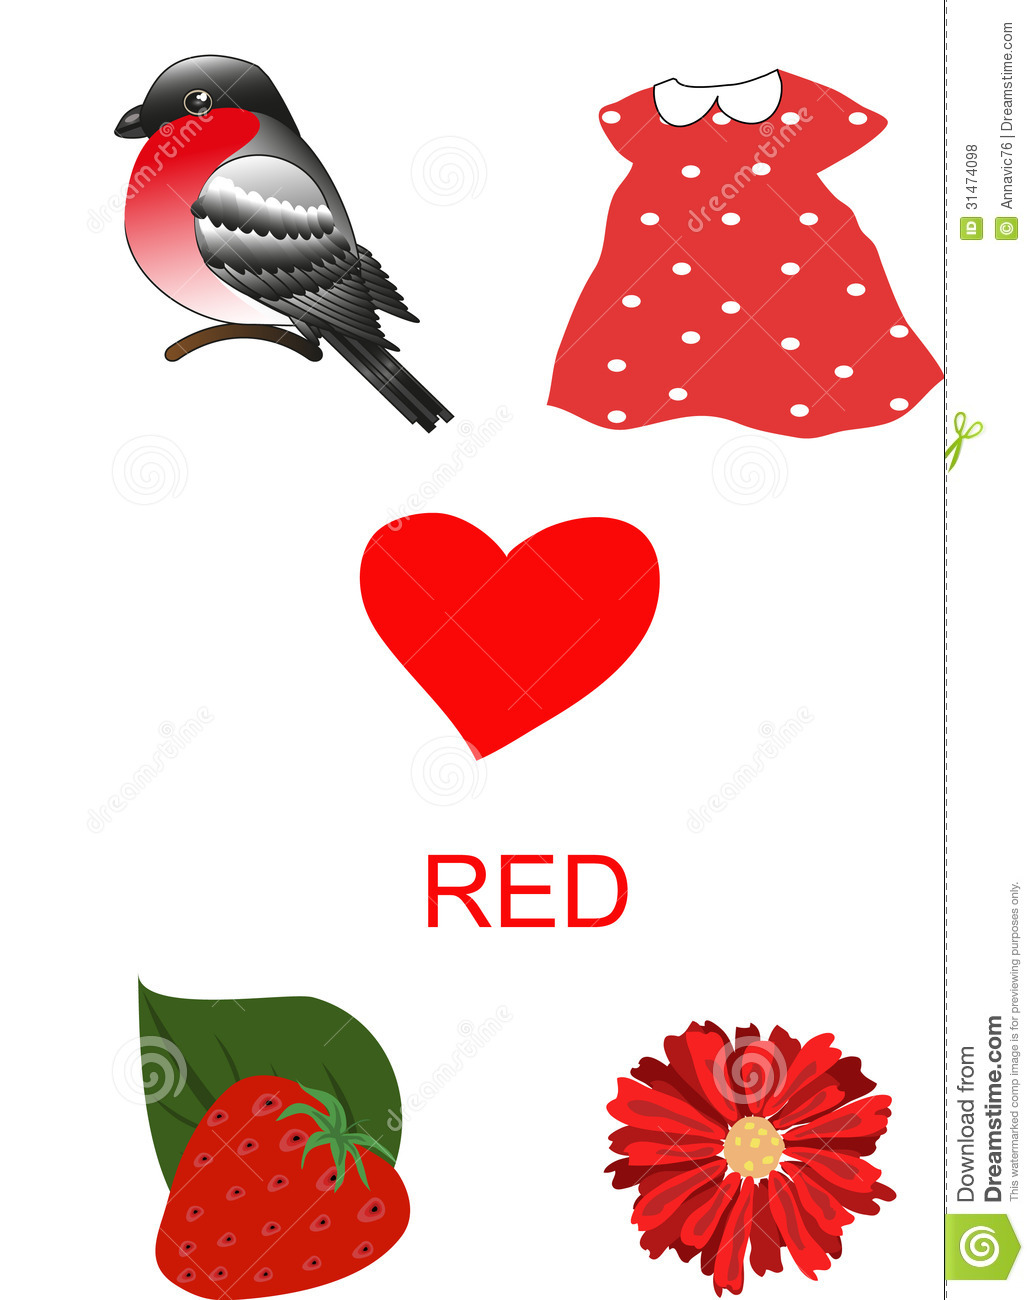 Objects Of Red Color Royalty Free Stock Photos